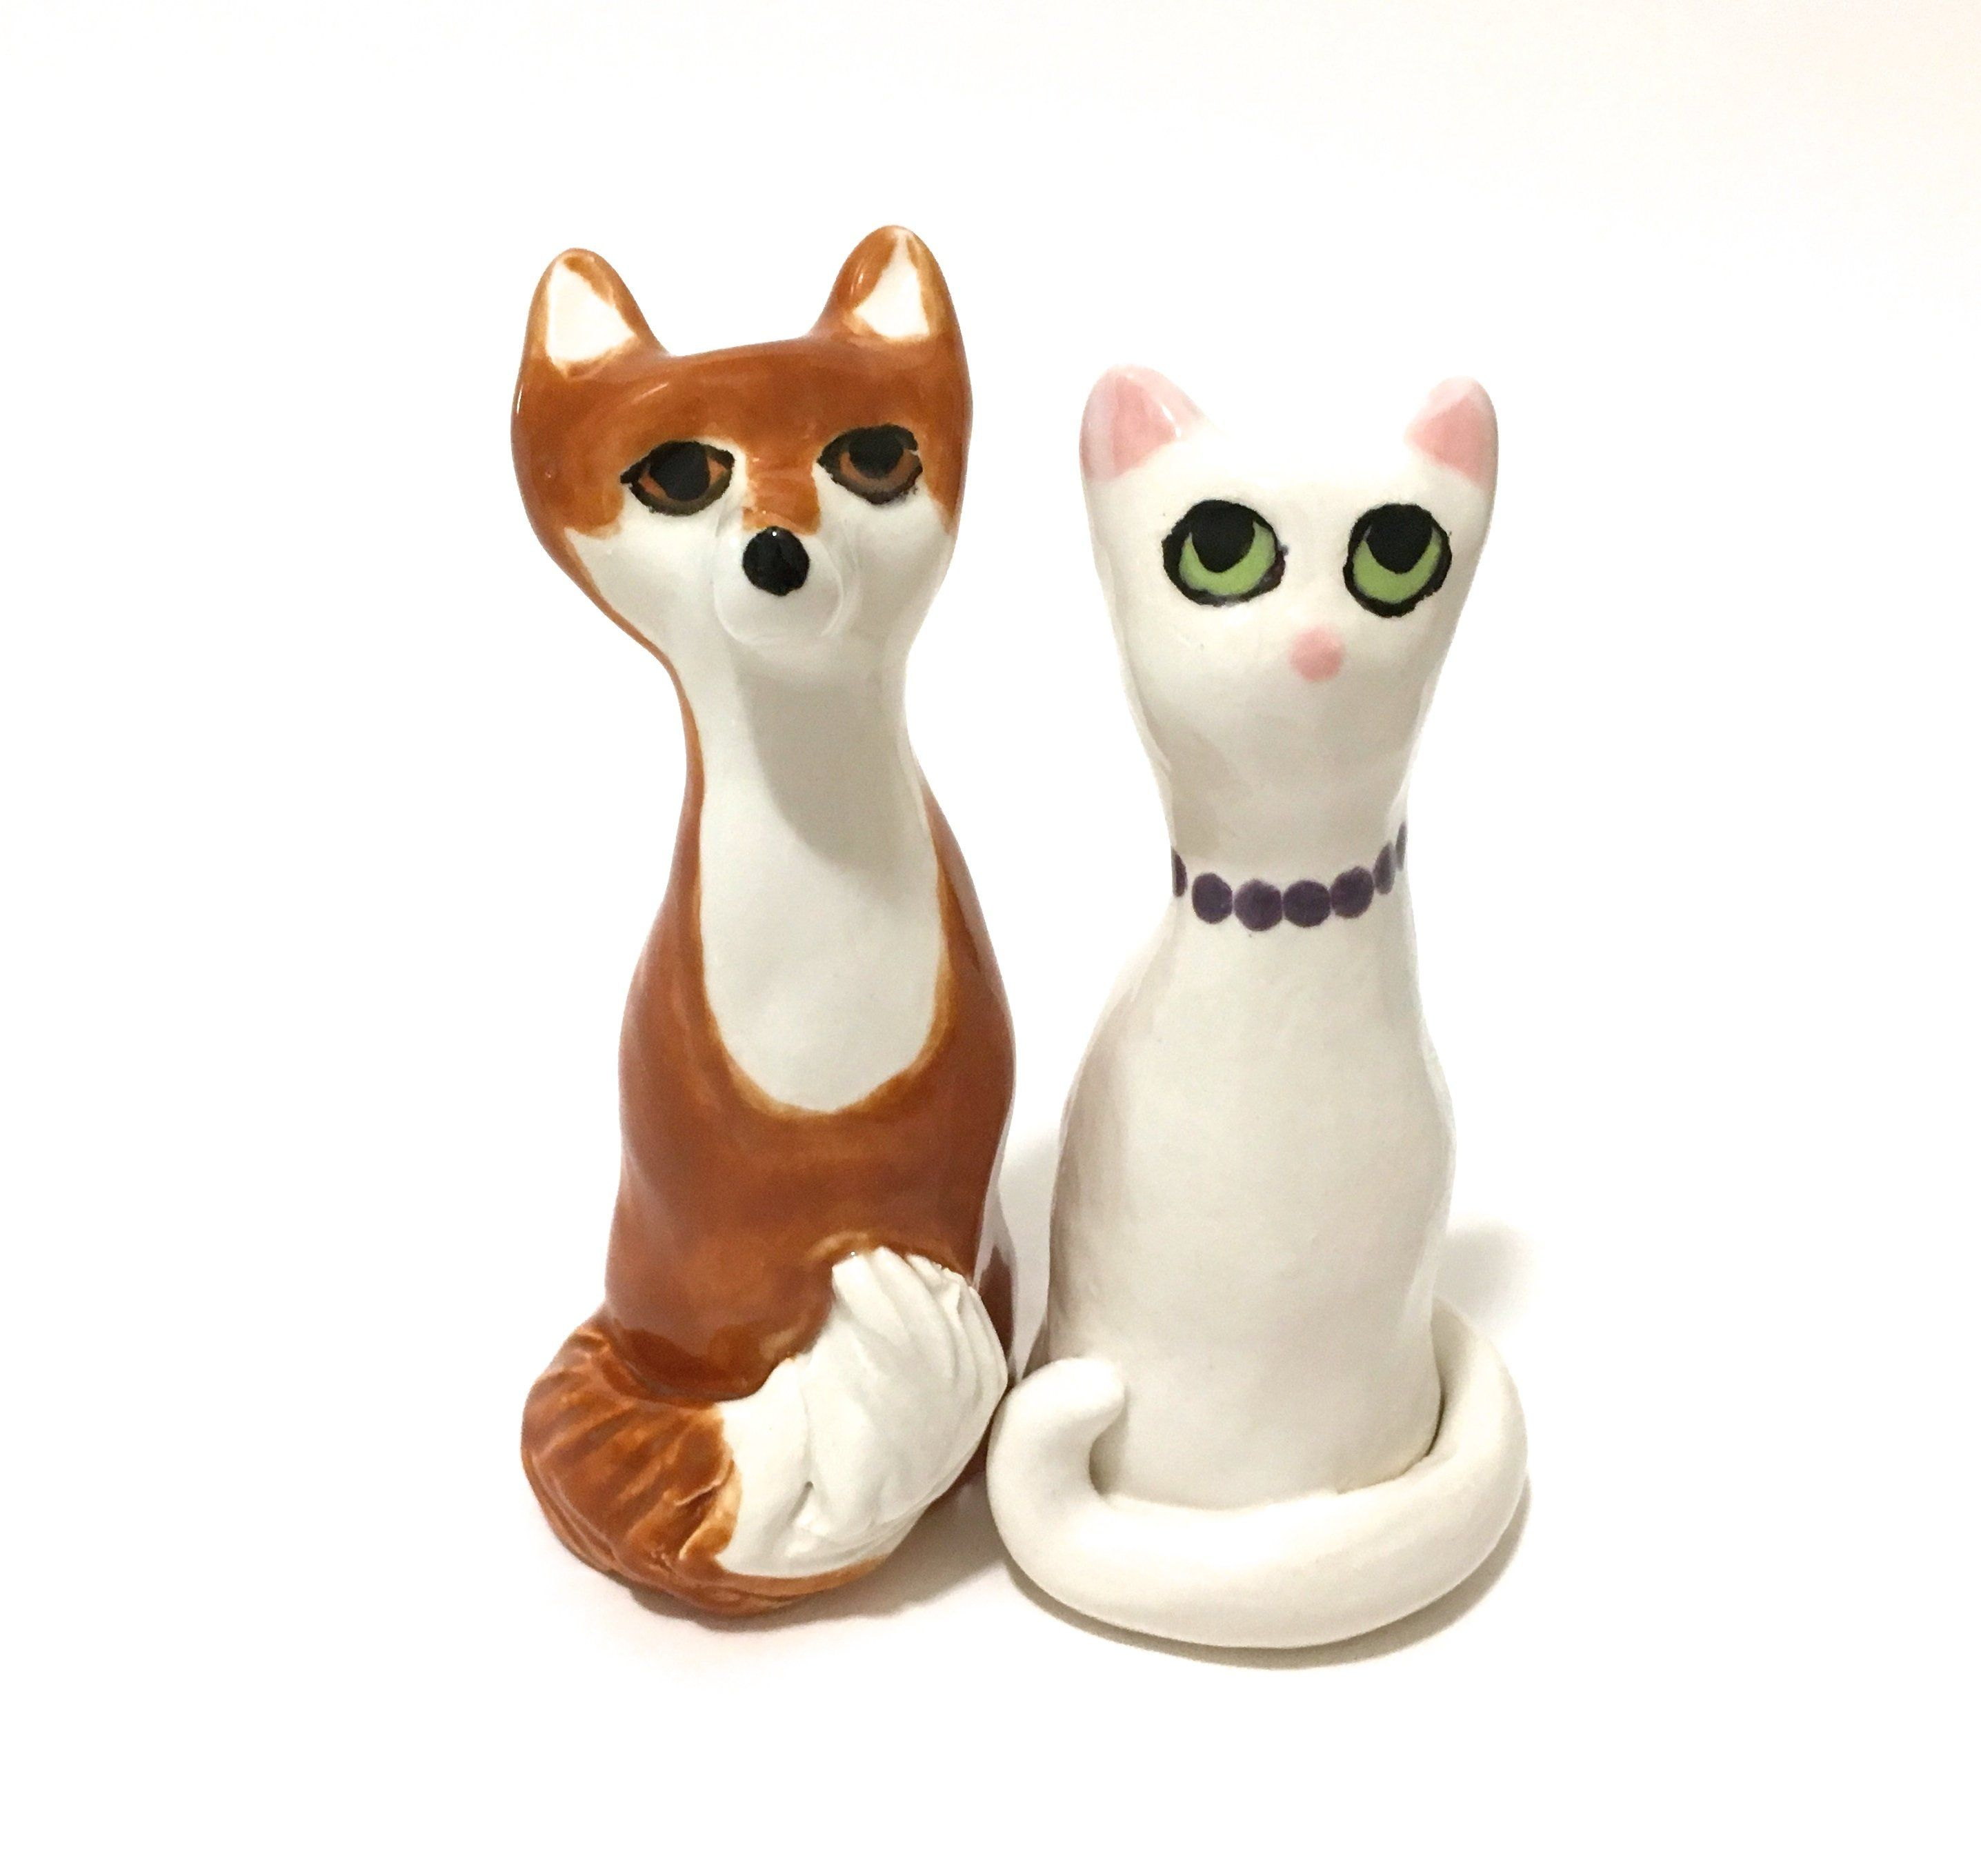 Fox And Cat Cake Toppers, Forever Figurines, Wedding Decor